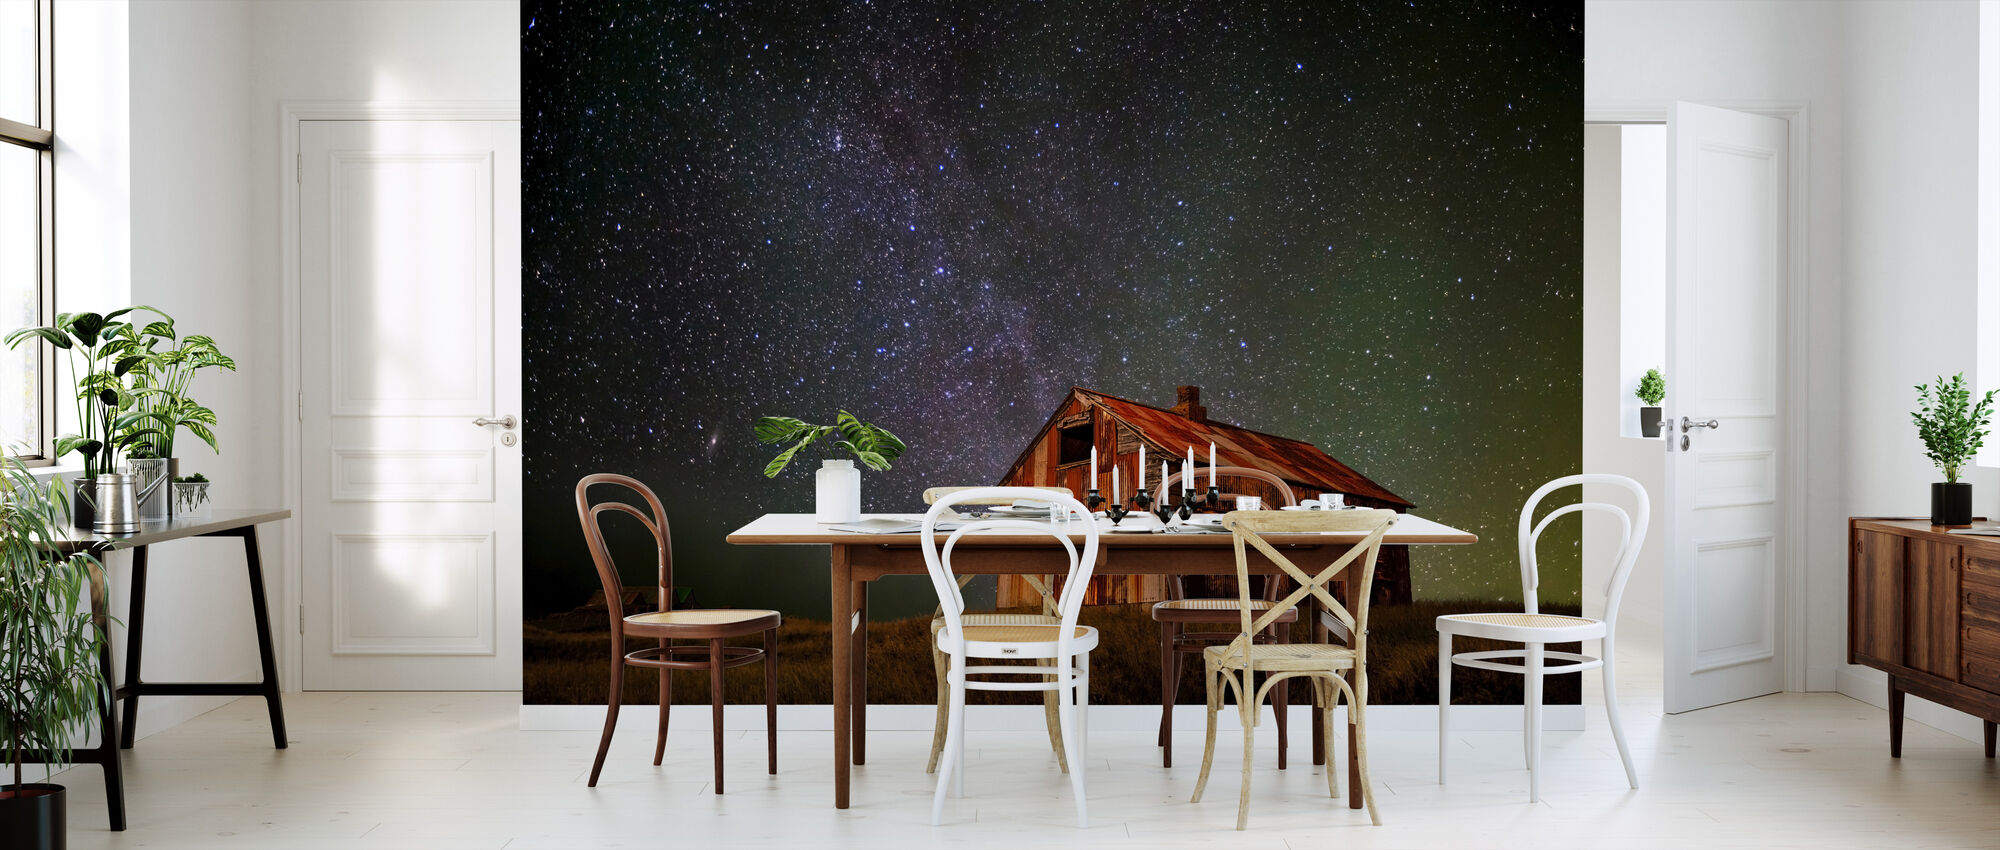 Space House - Wallpaper - Kitchen